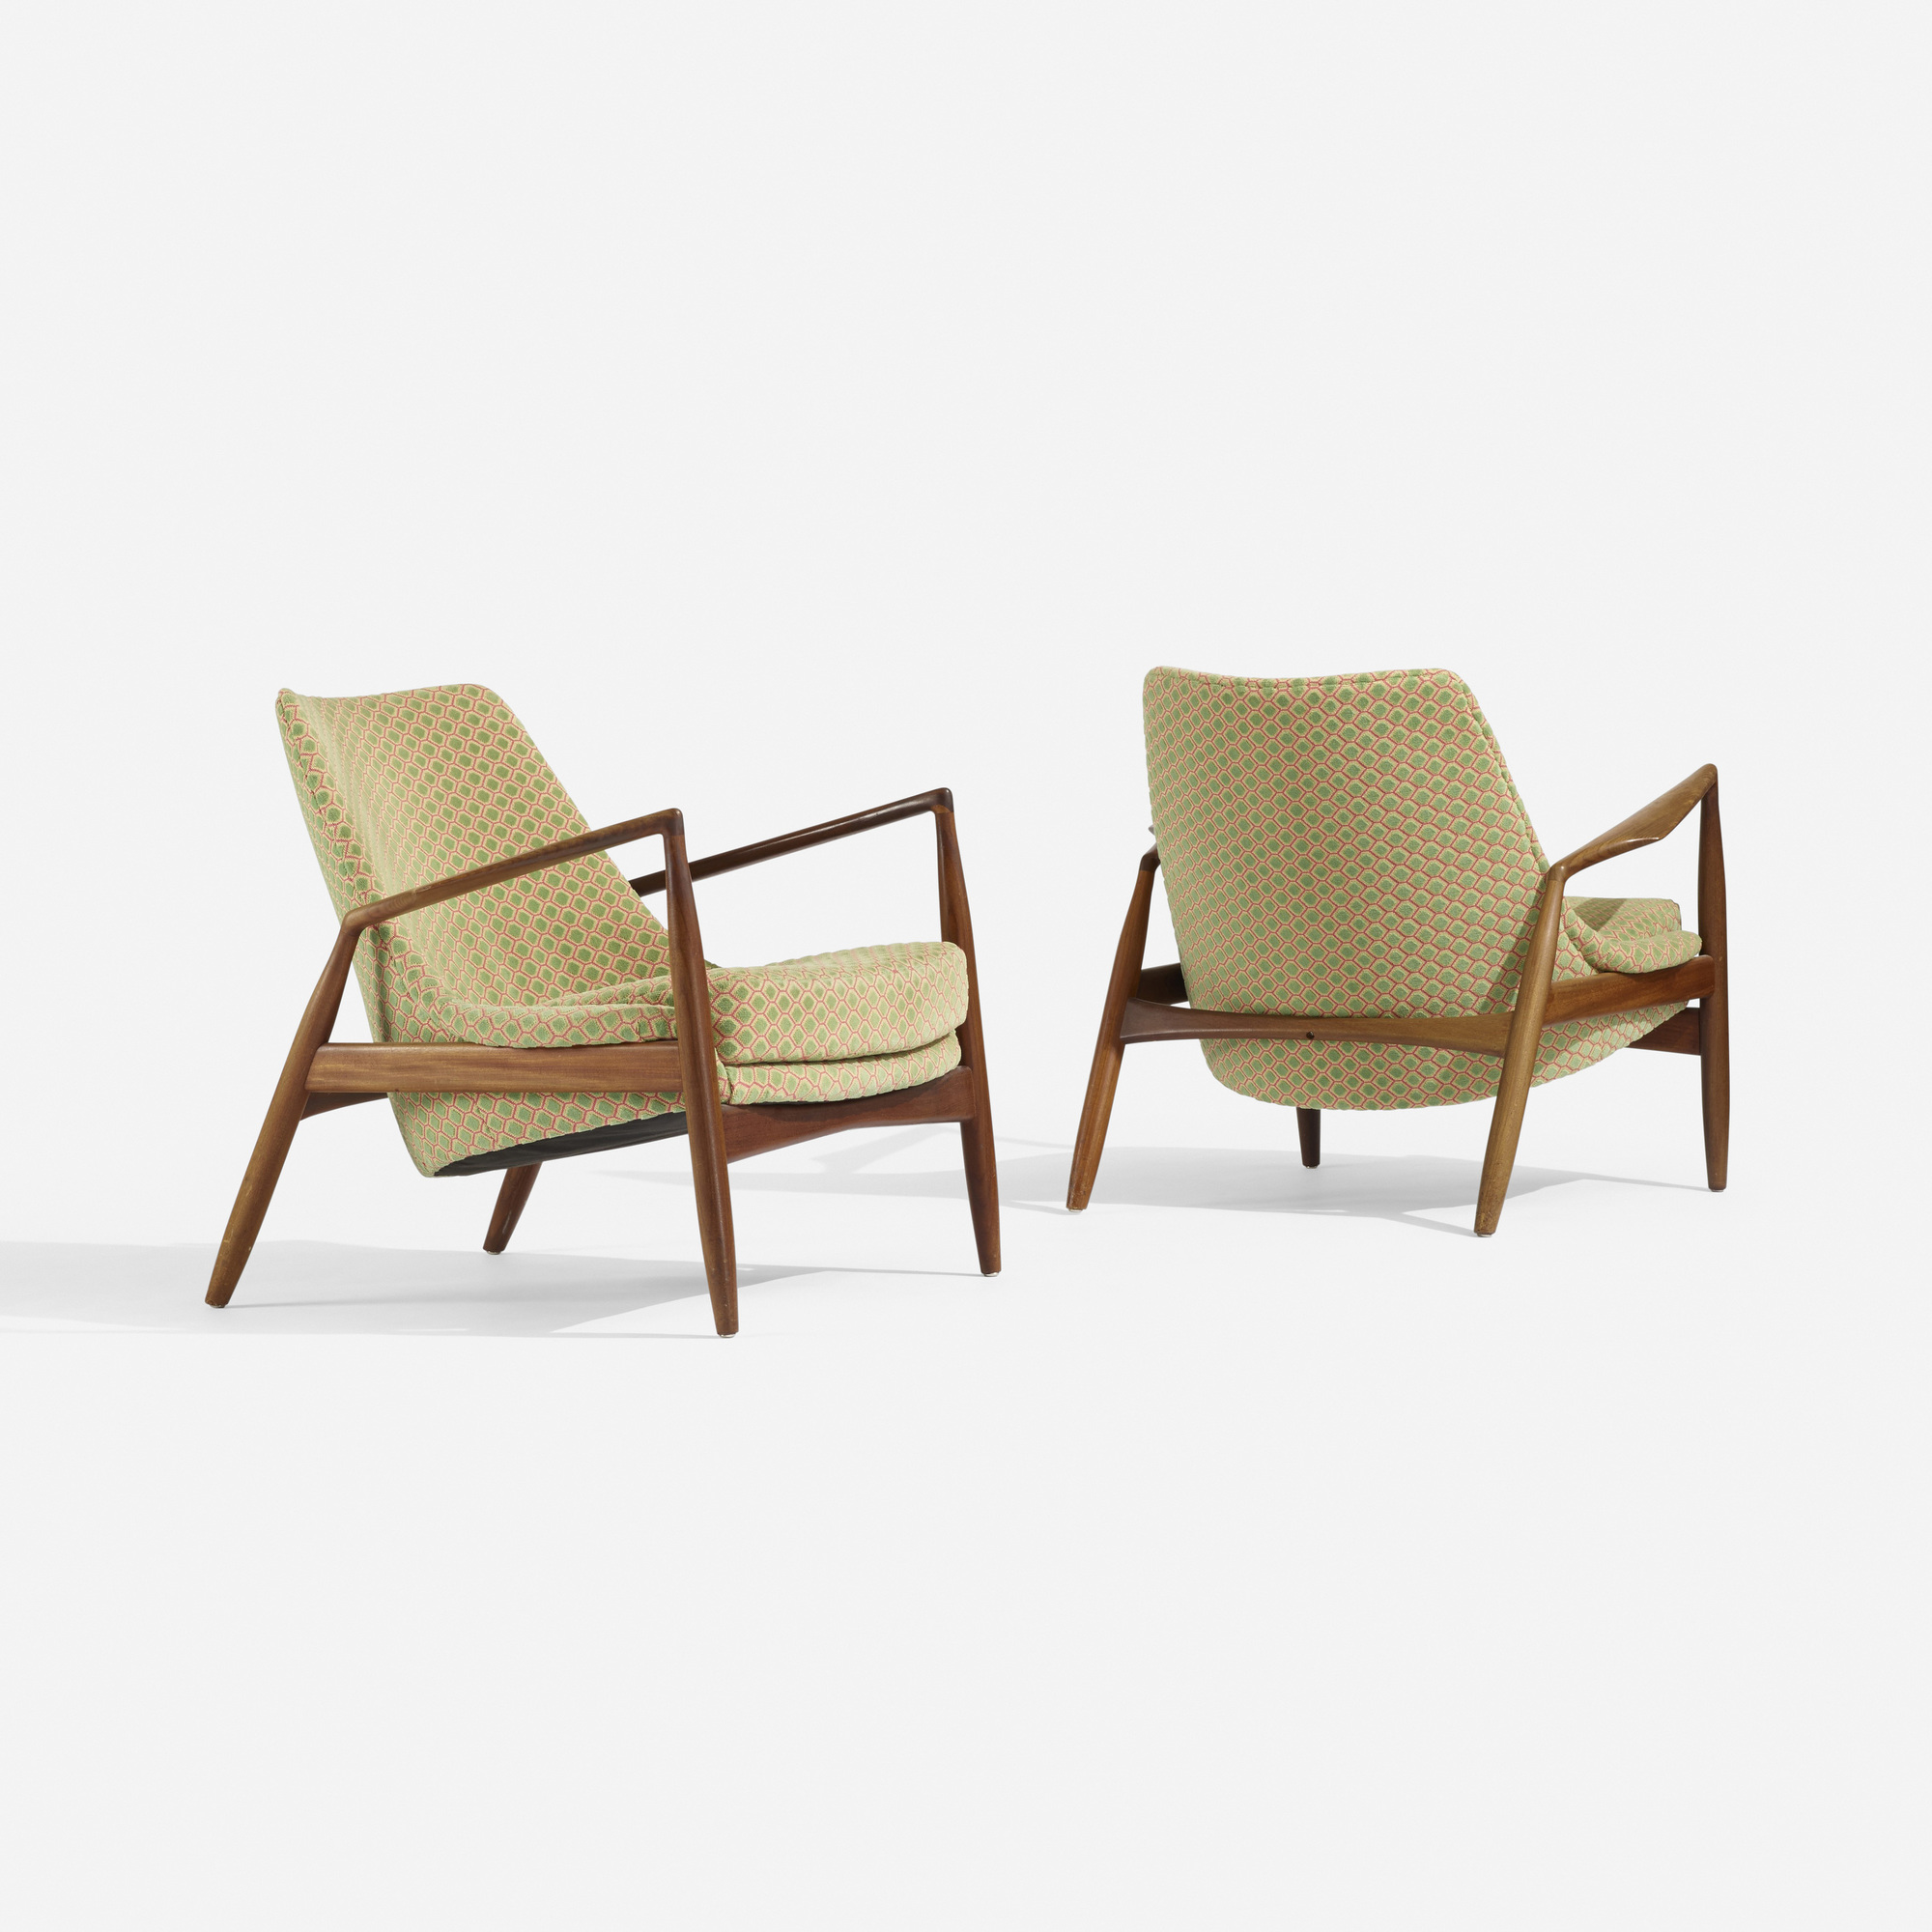 268: Ib Kofod-Larsen / lounge chairs, pair (2 of 4)